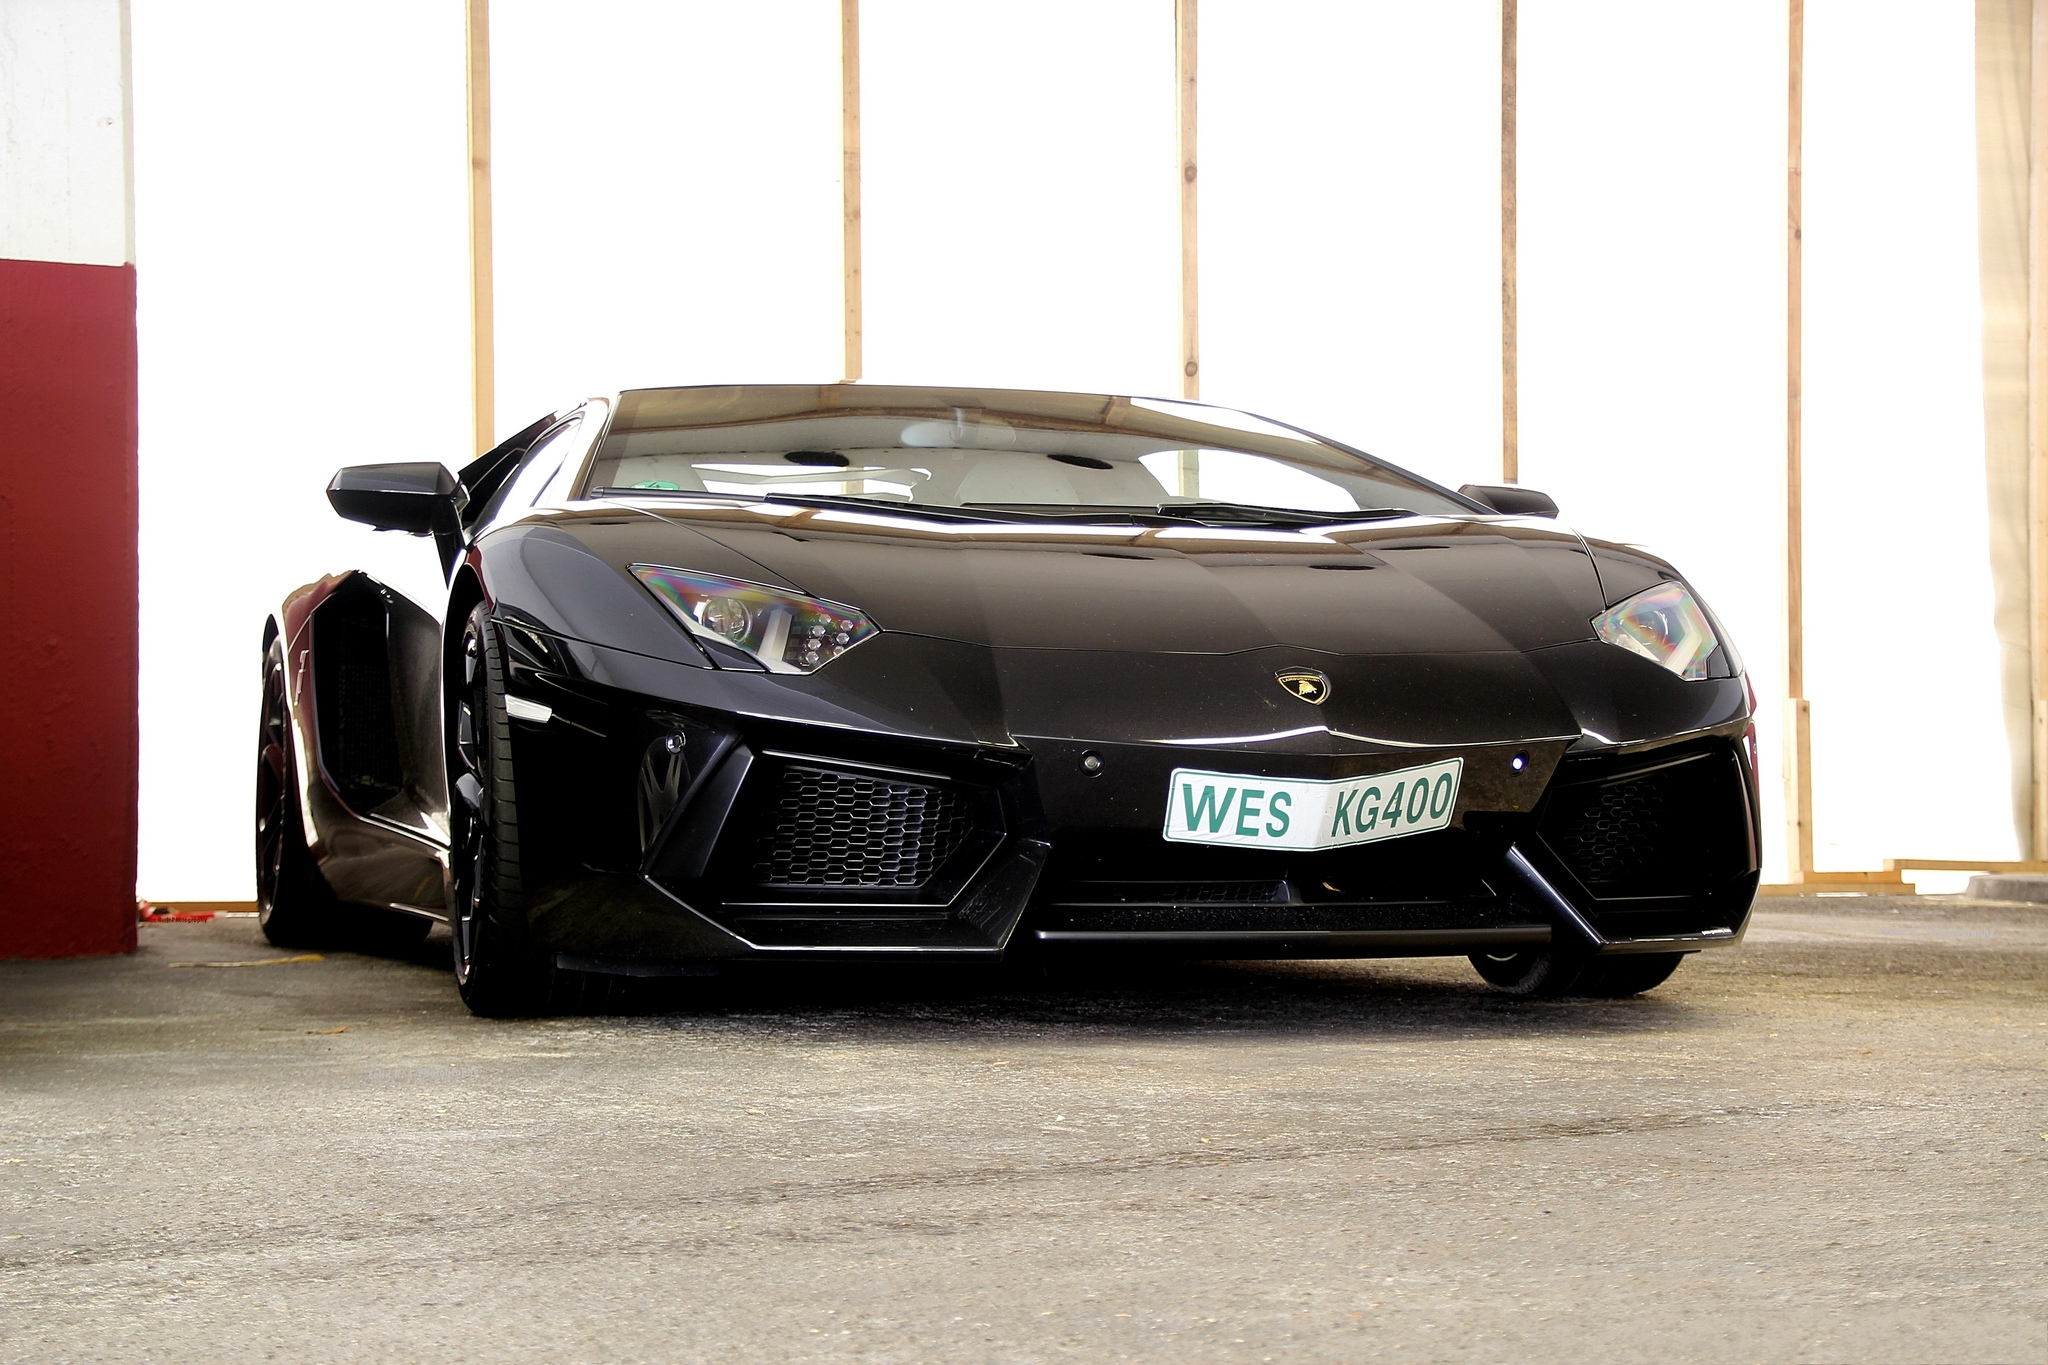 118681 download wallpaper Lamborghini, Cars, Side View, Aventador, Lp700-4 screensavers and pictures for free